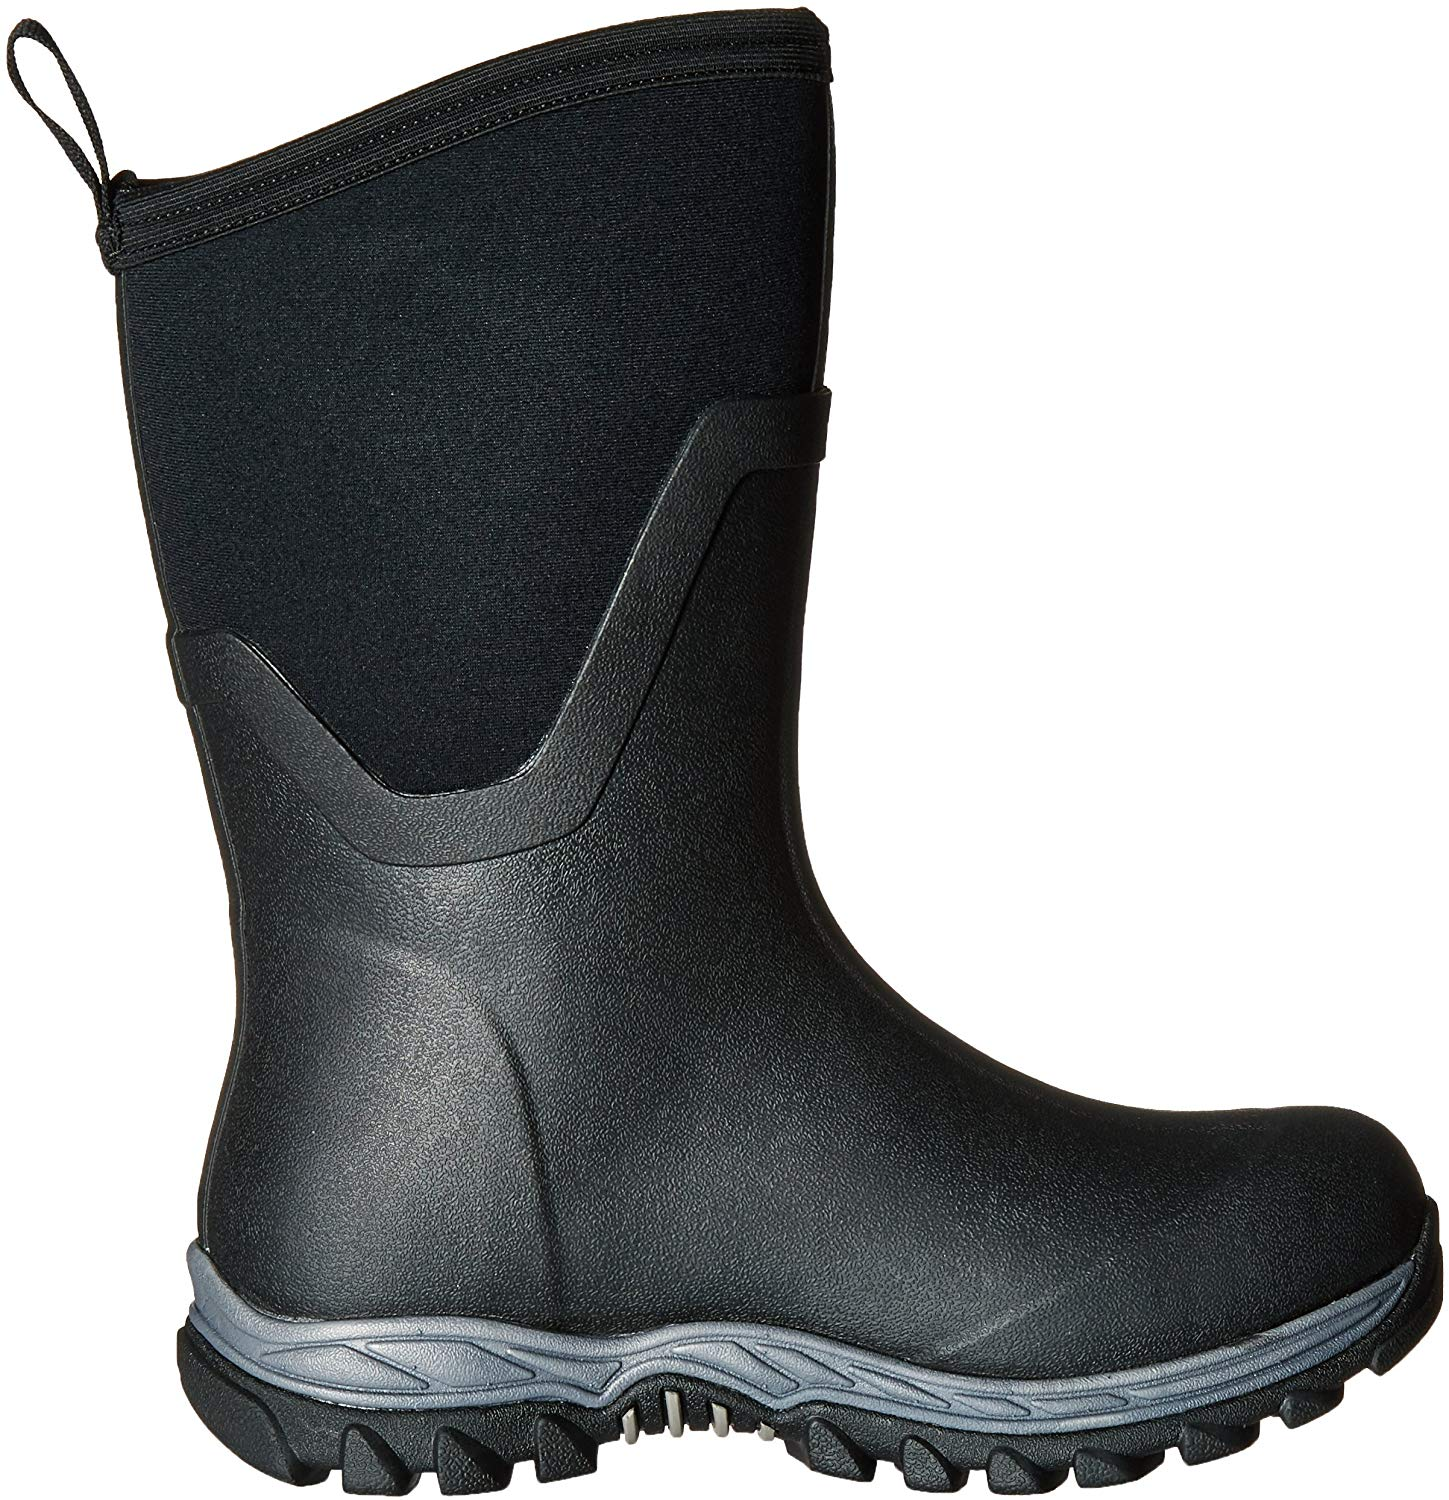 Muck Arctic Sport ll Extreme Conditions Mid-Height Rubber Women's Winter Boots, 7 M US, Black